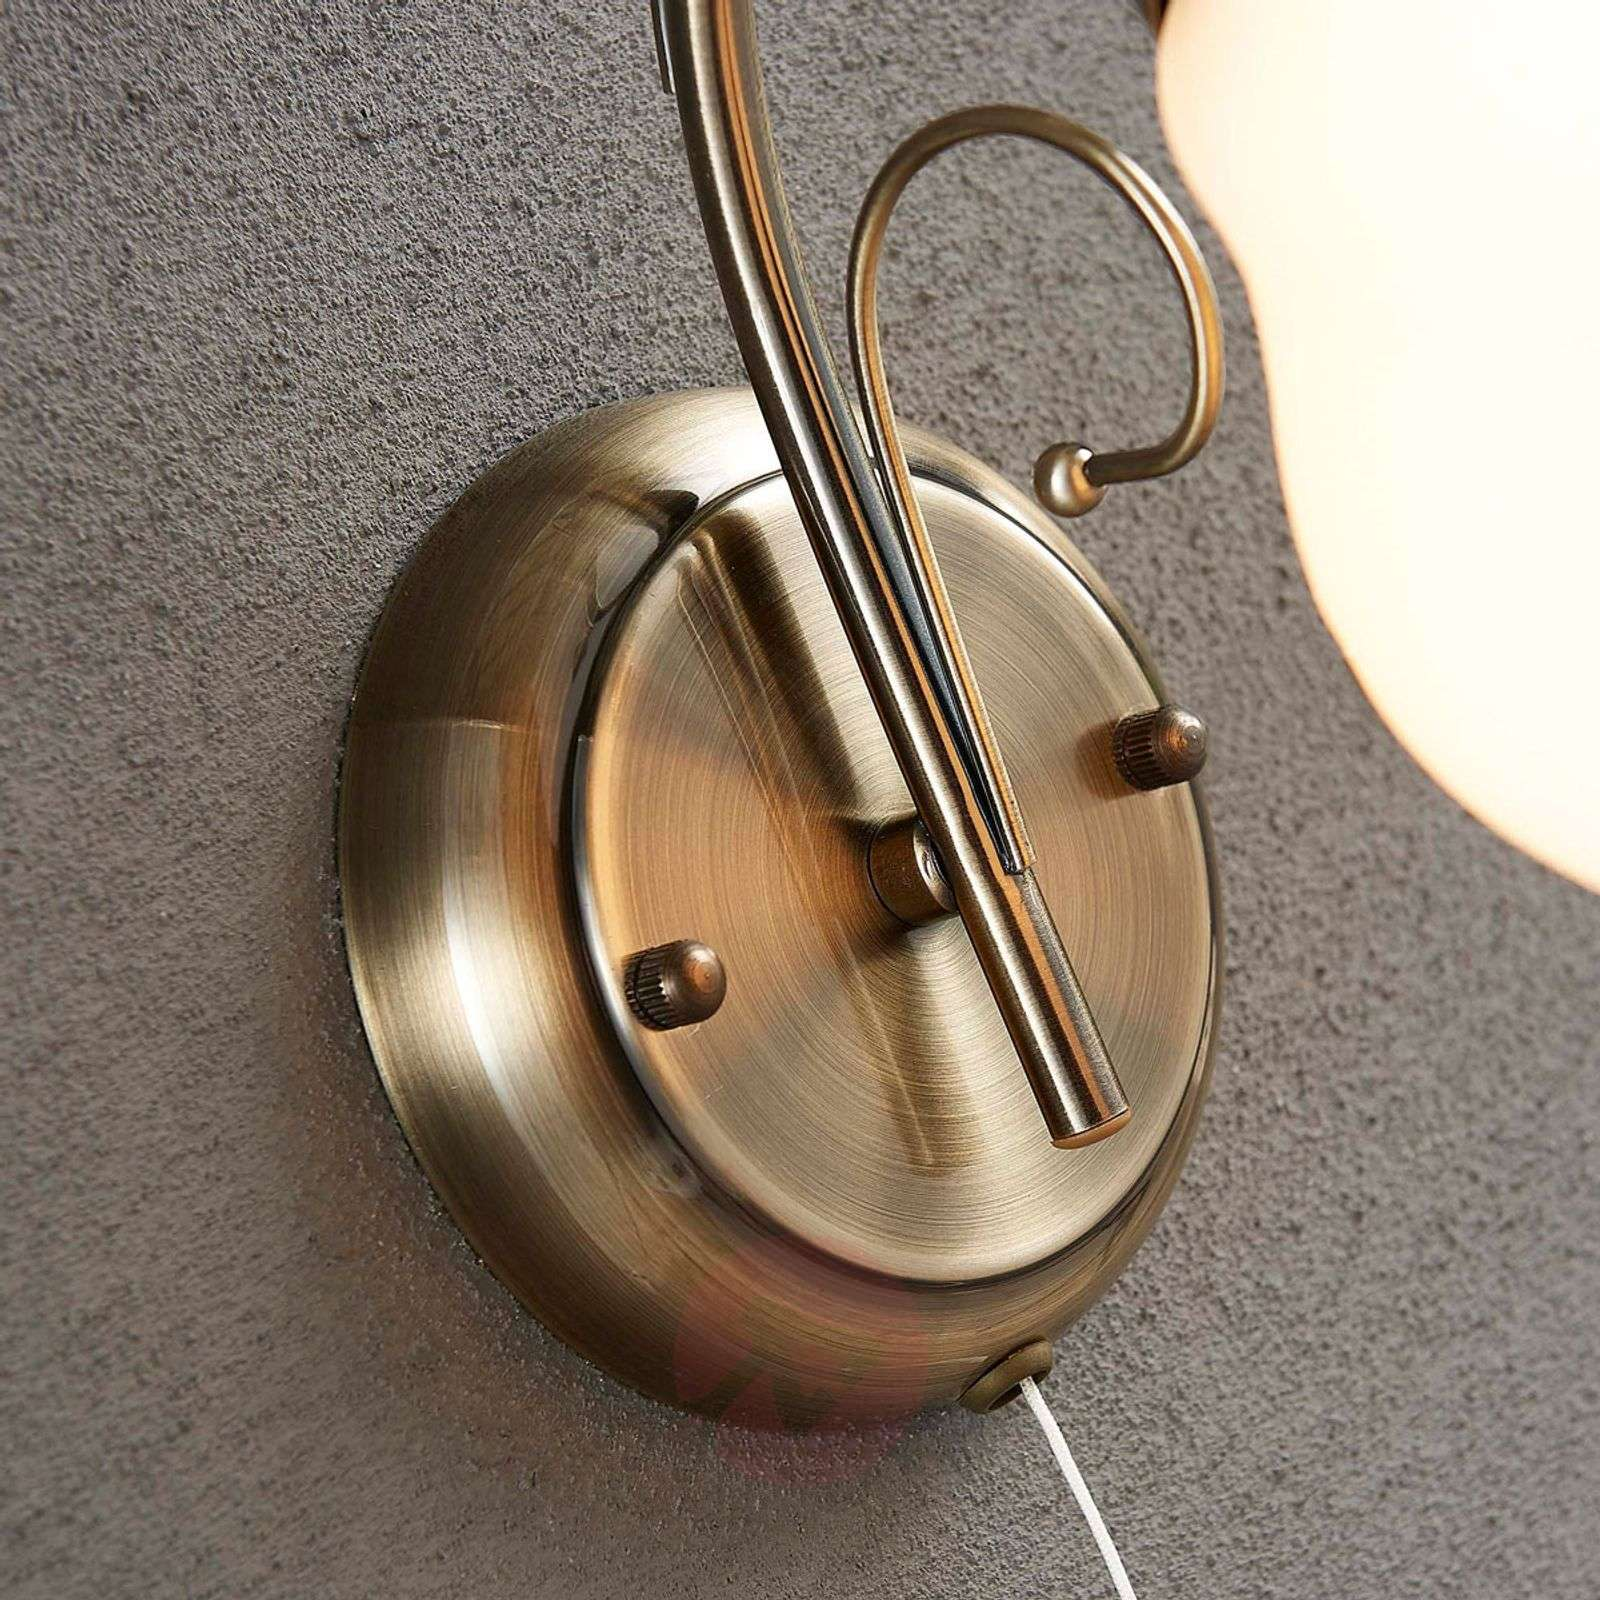 Wall lamp Amedea in a romantic style-9620740-02